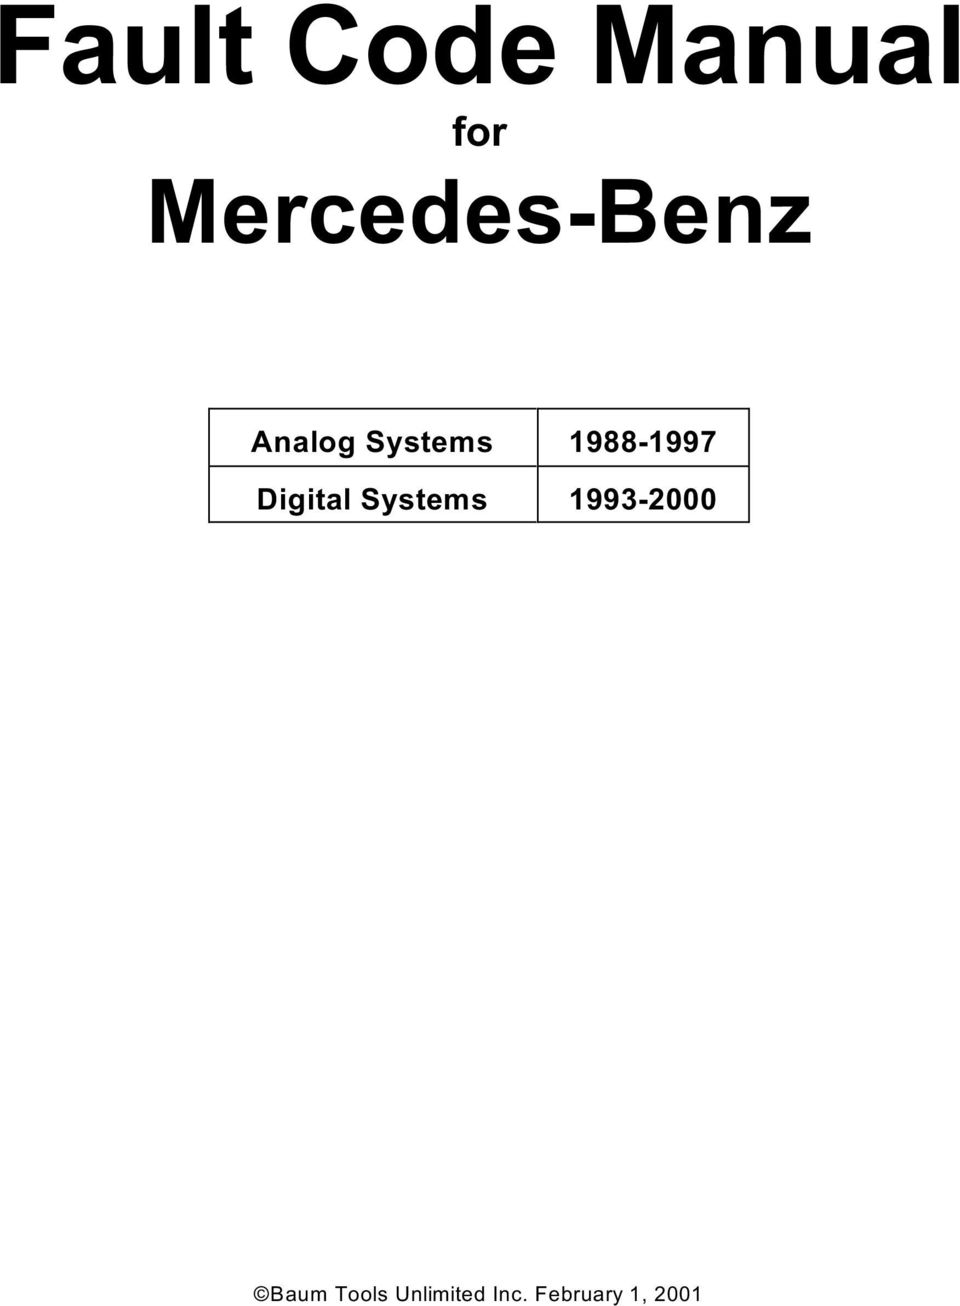 Fault Code Manual for Mercedes-Benz Analog Systems Digital Systems - PDF